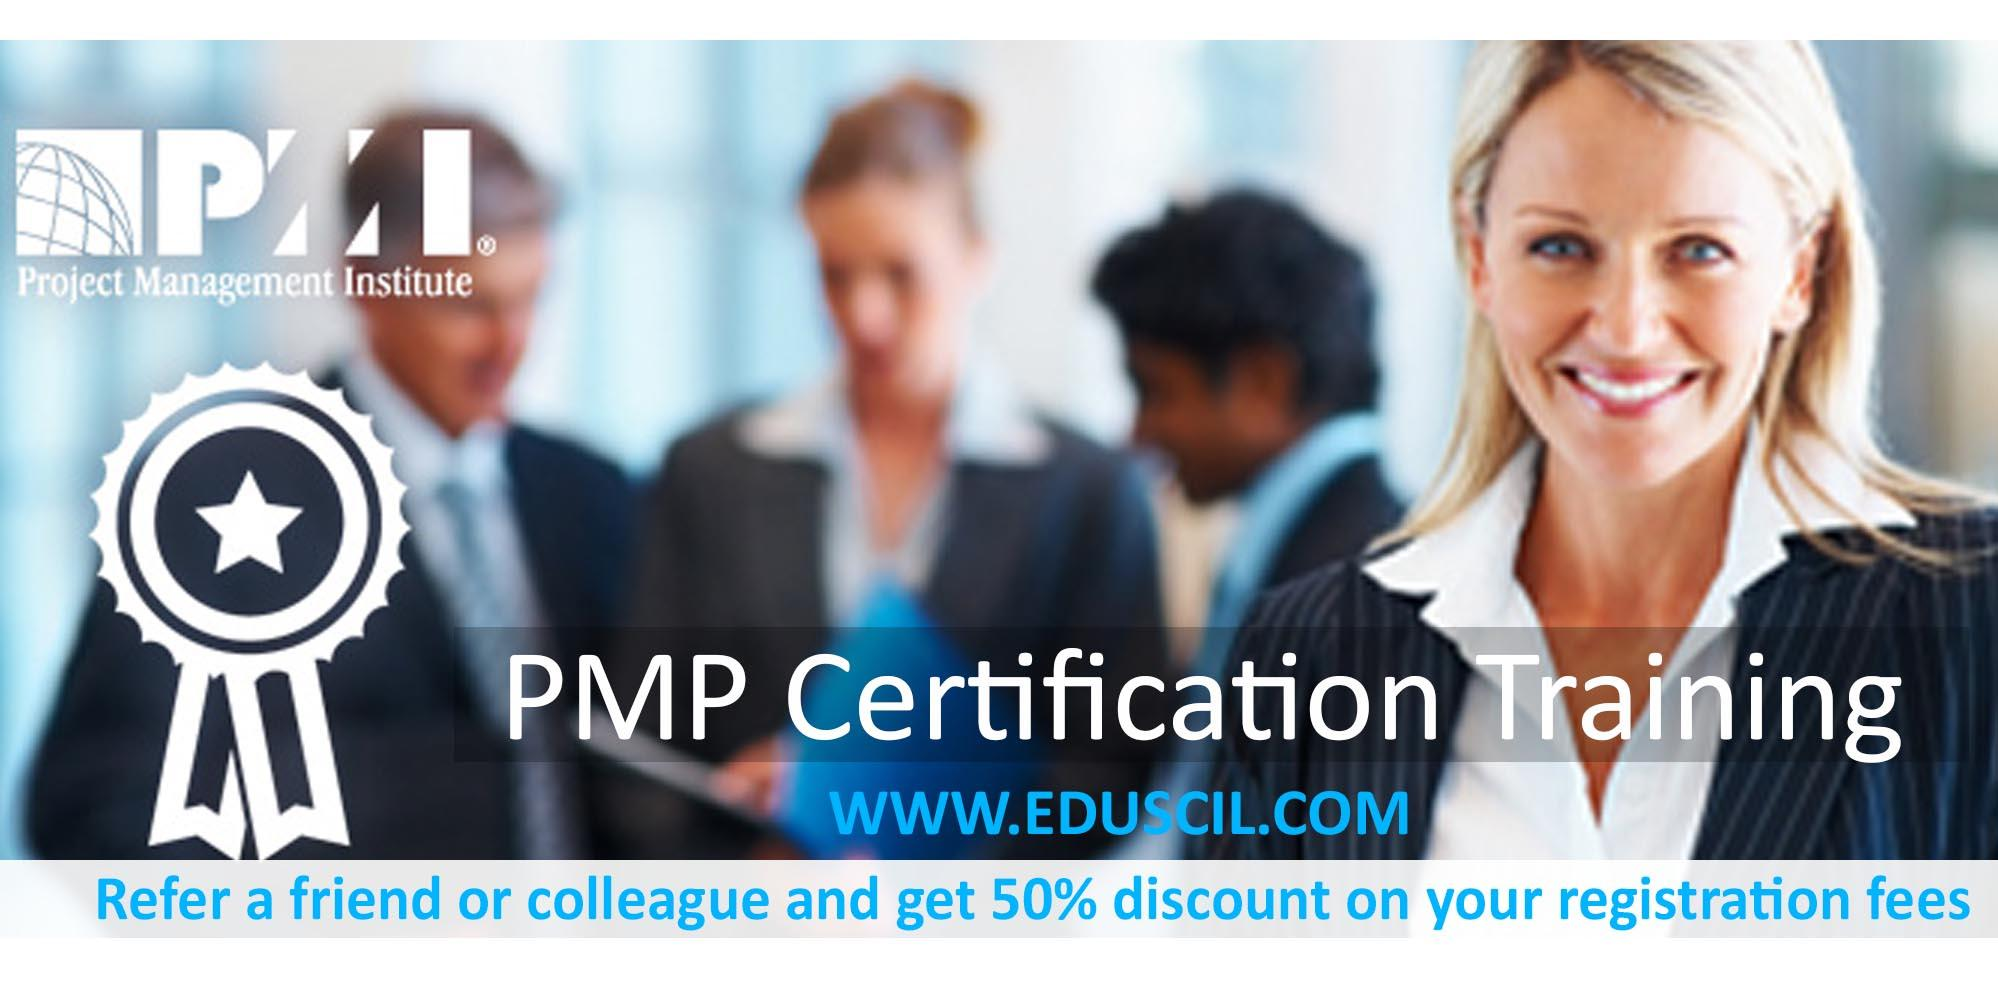 Pmp certification training course in rochester ny usa eduscil pmp certification training course in rochester ny usa eduscil xflitez Image collections